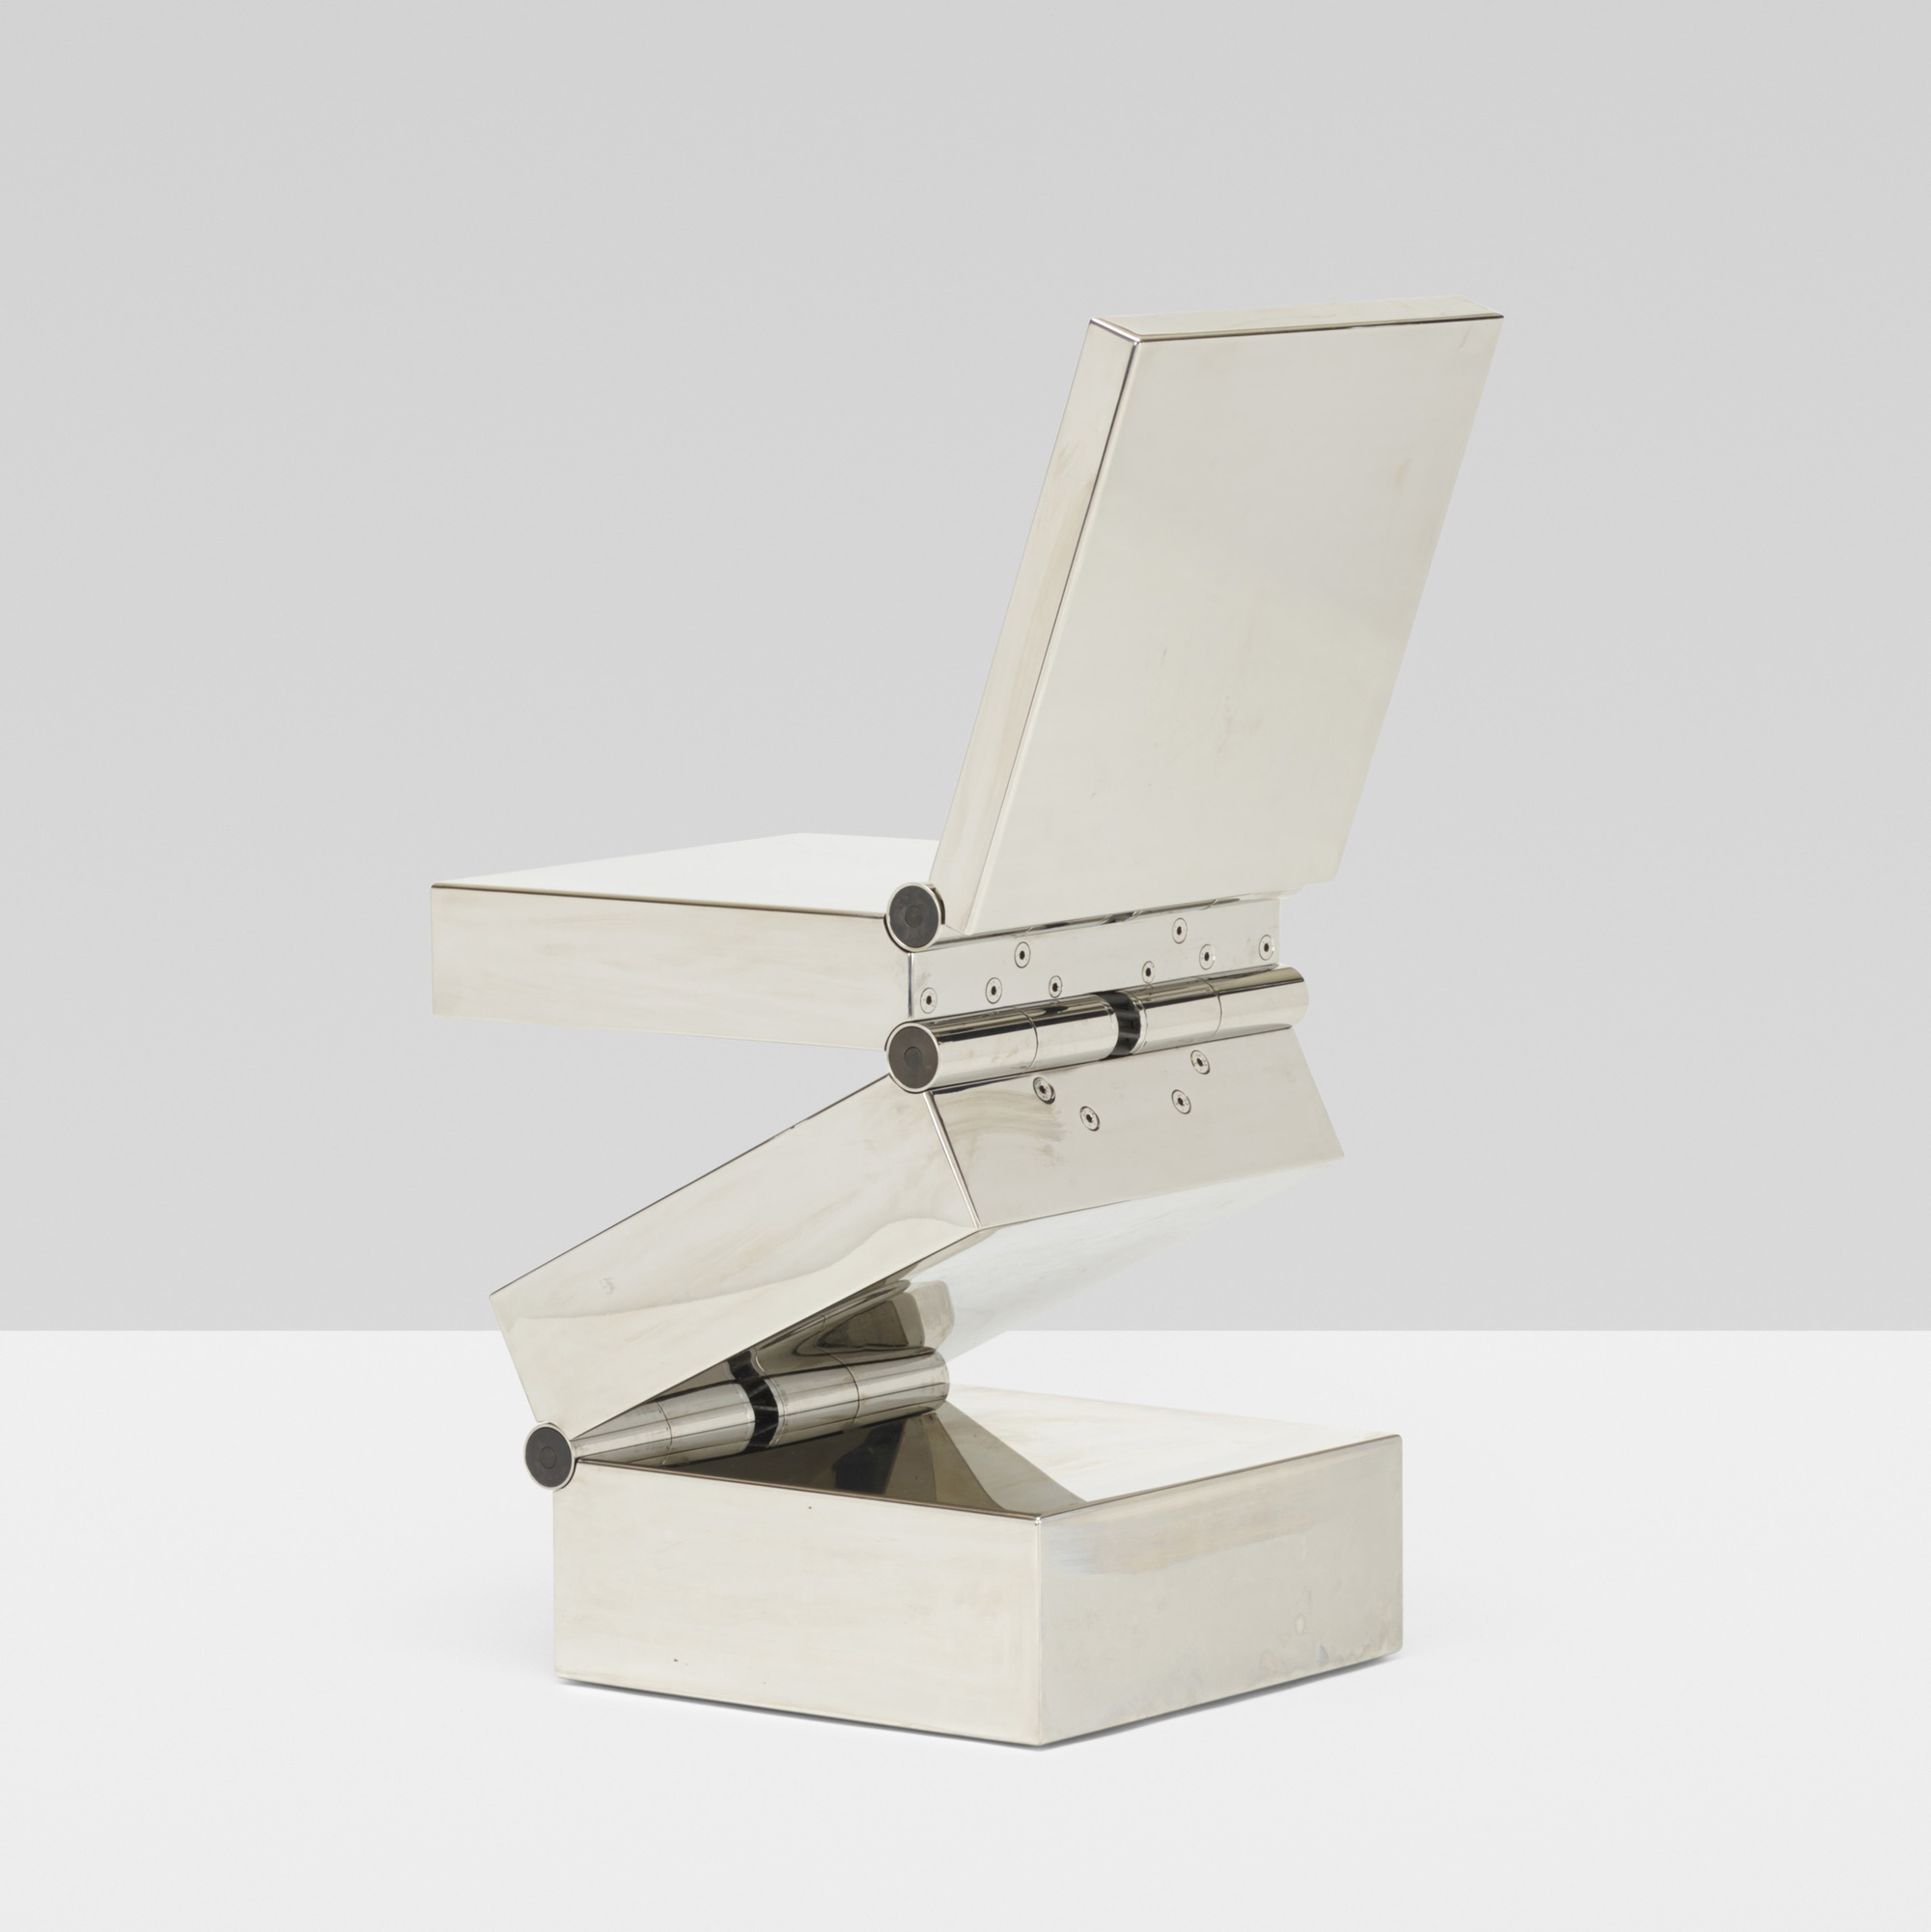 276: Ron Arad / Box in Four Movements chair (2 of 5)